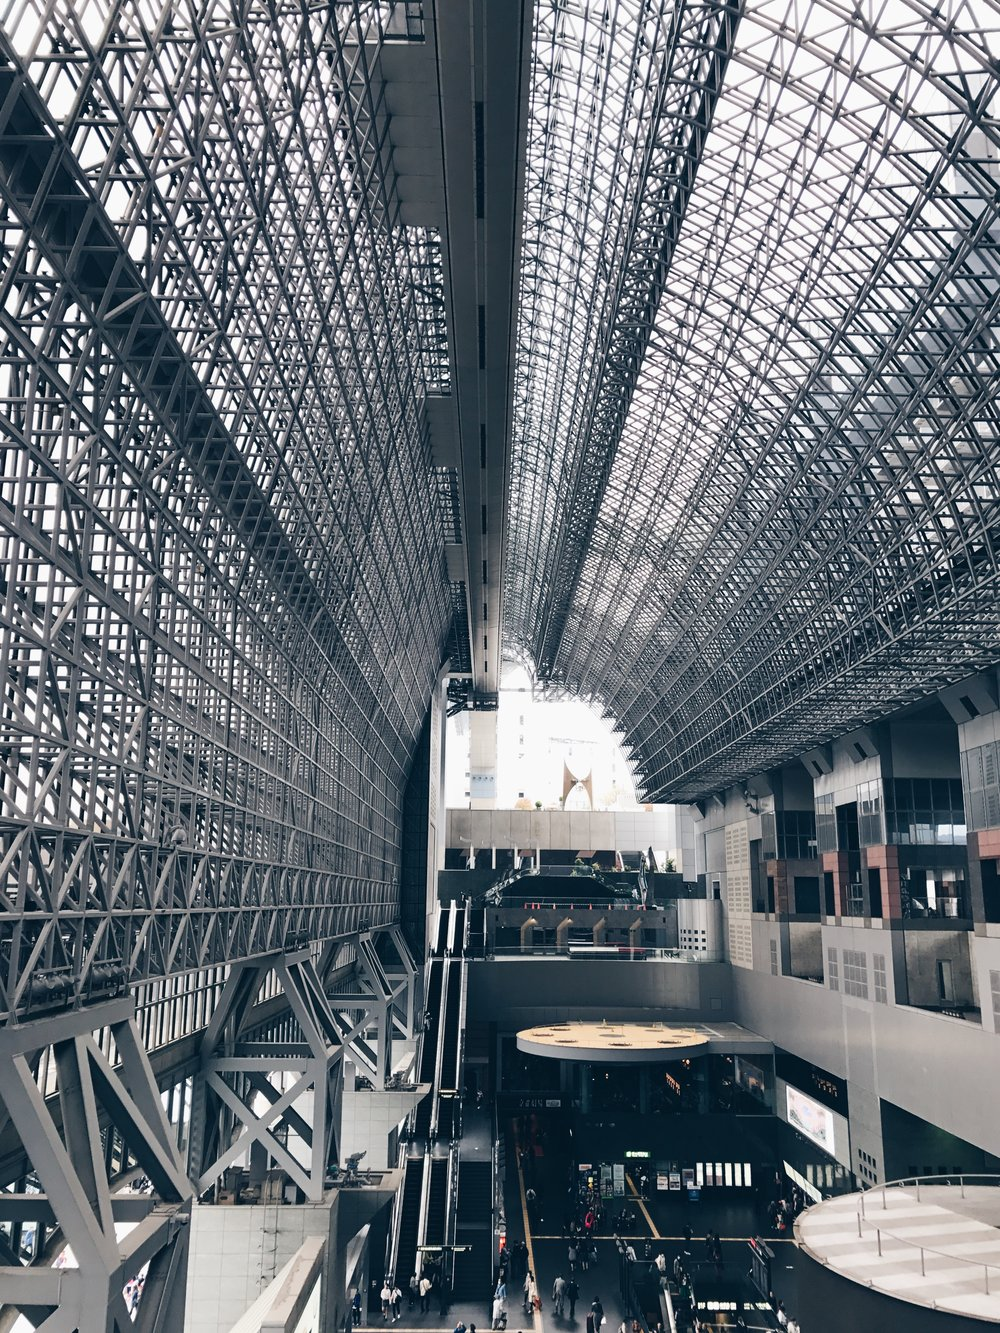 Kyoto station is fire aye ef.